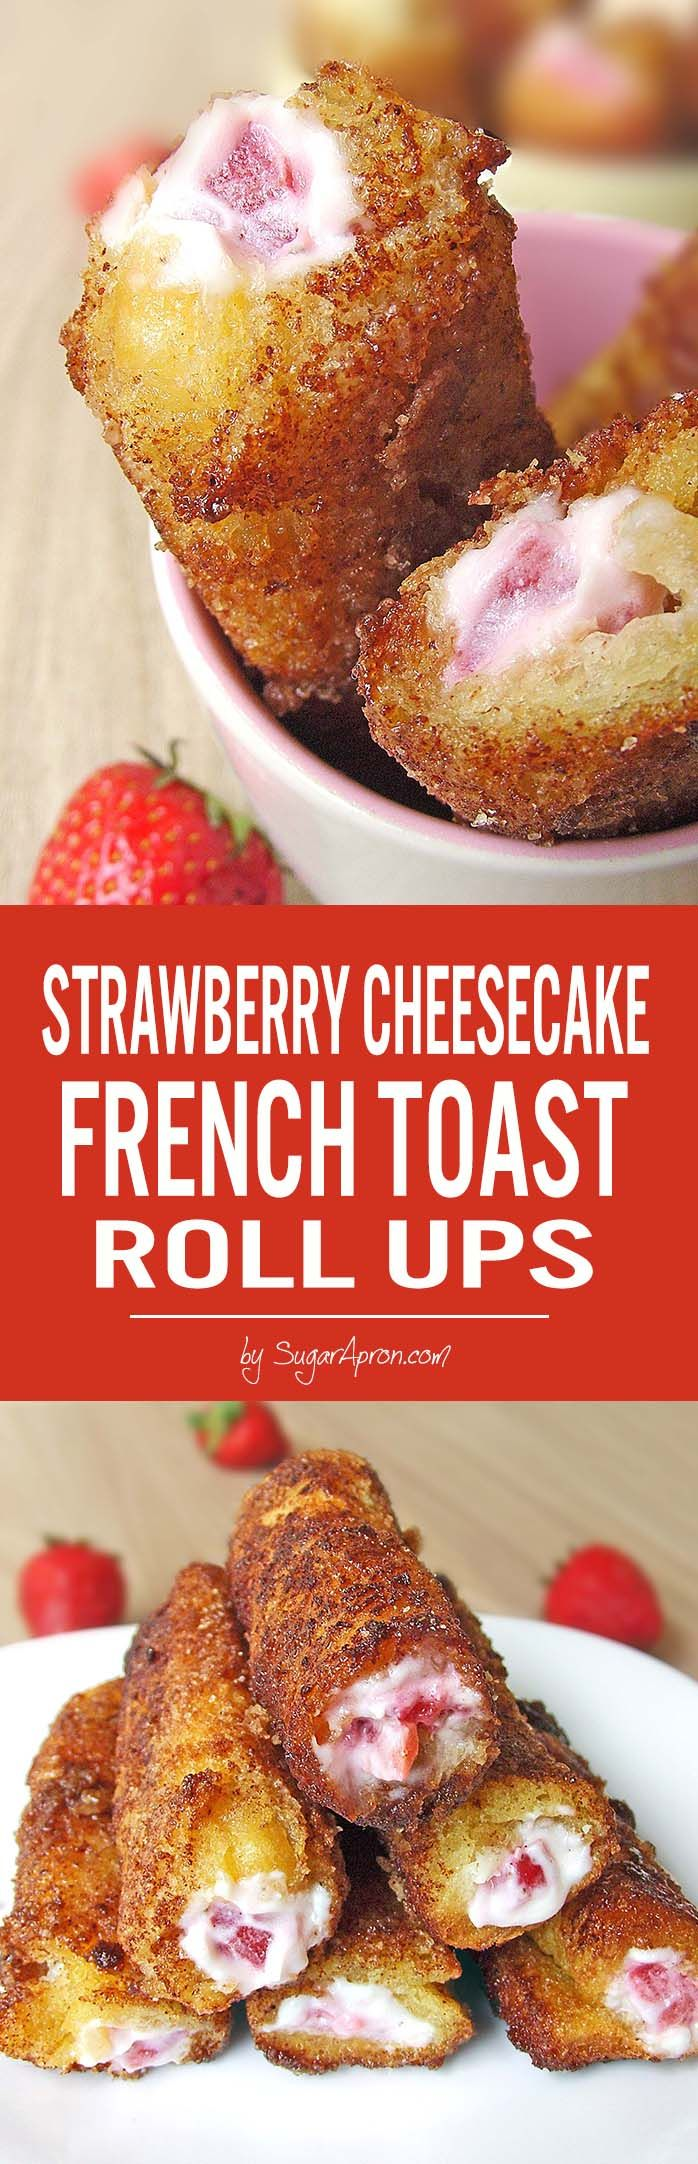 These strawberry cheesecake French toast roll-ups are actually really easy to make and you probably have all the ingredients in your home already!